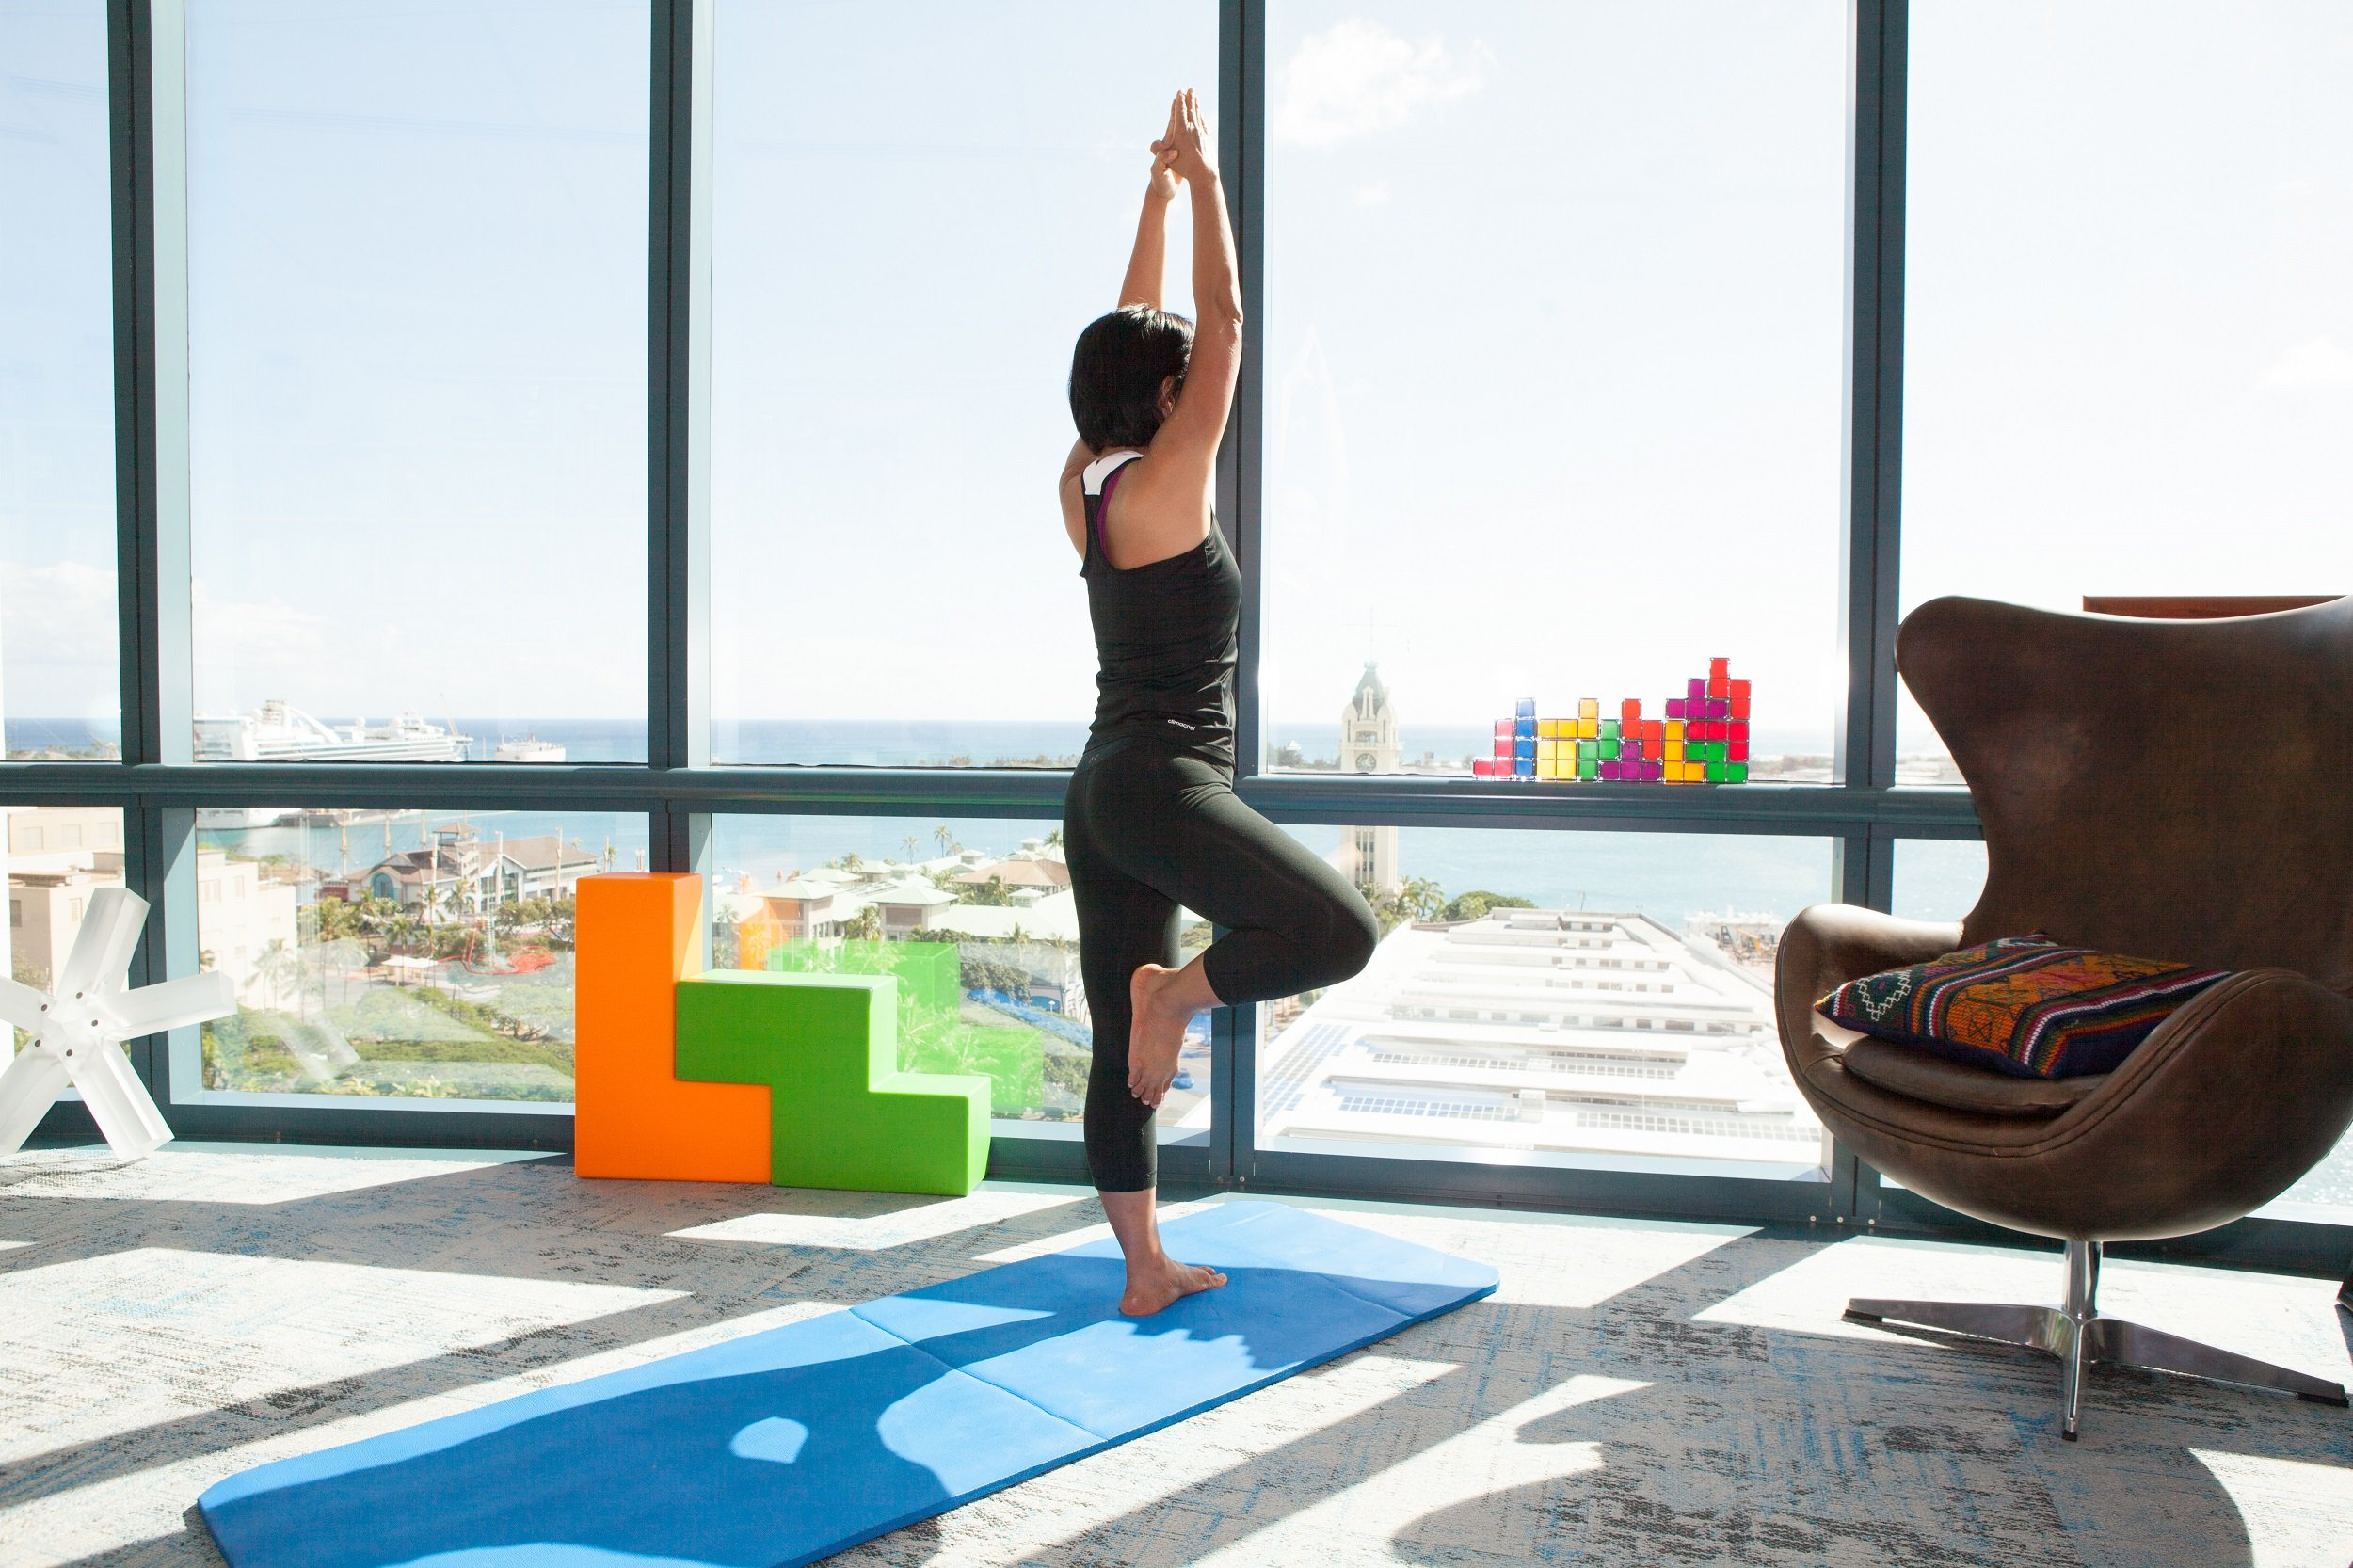 How to Add Tetris to Your Yoga Routine